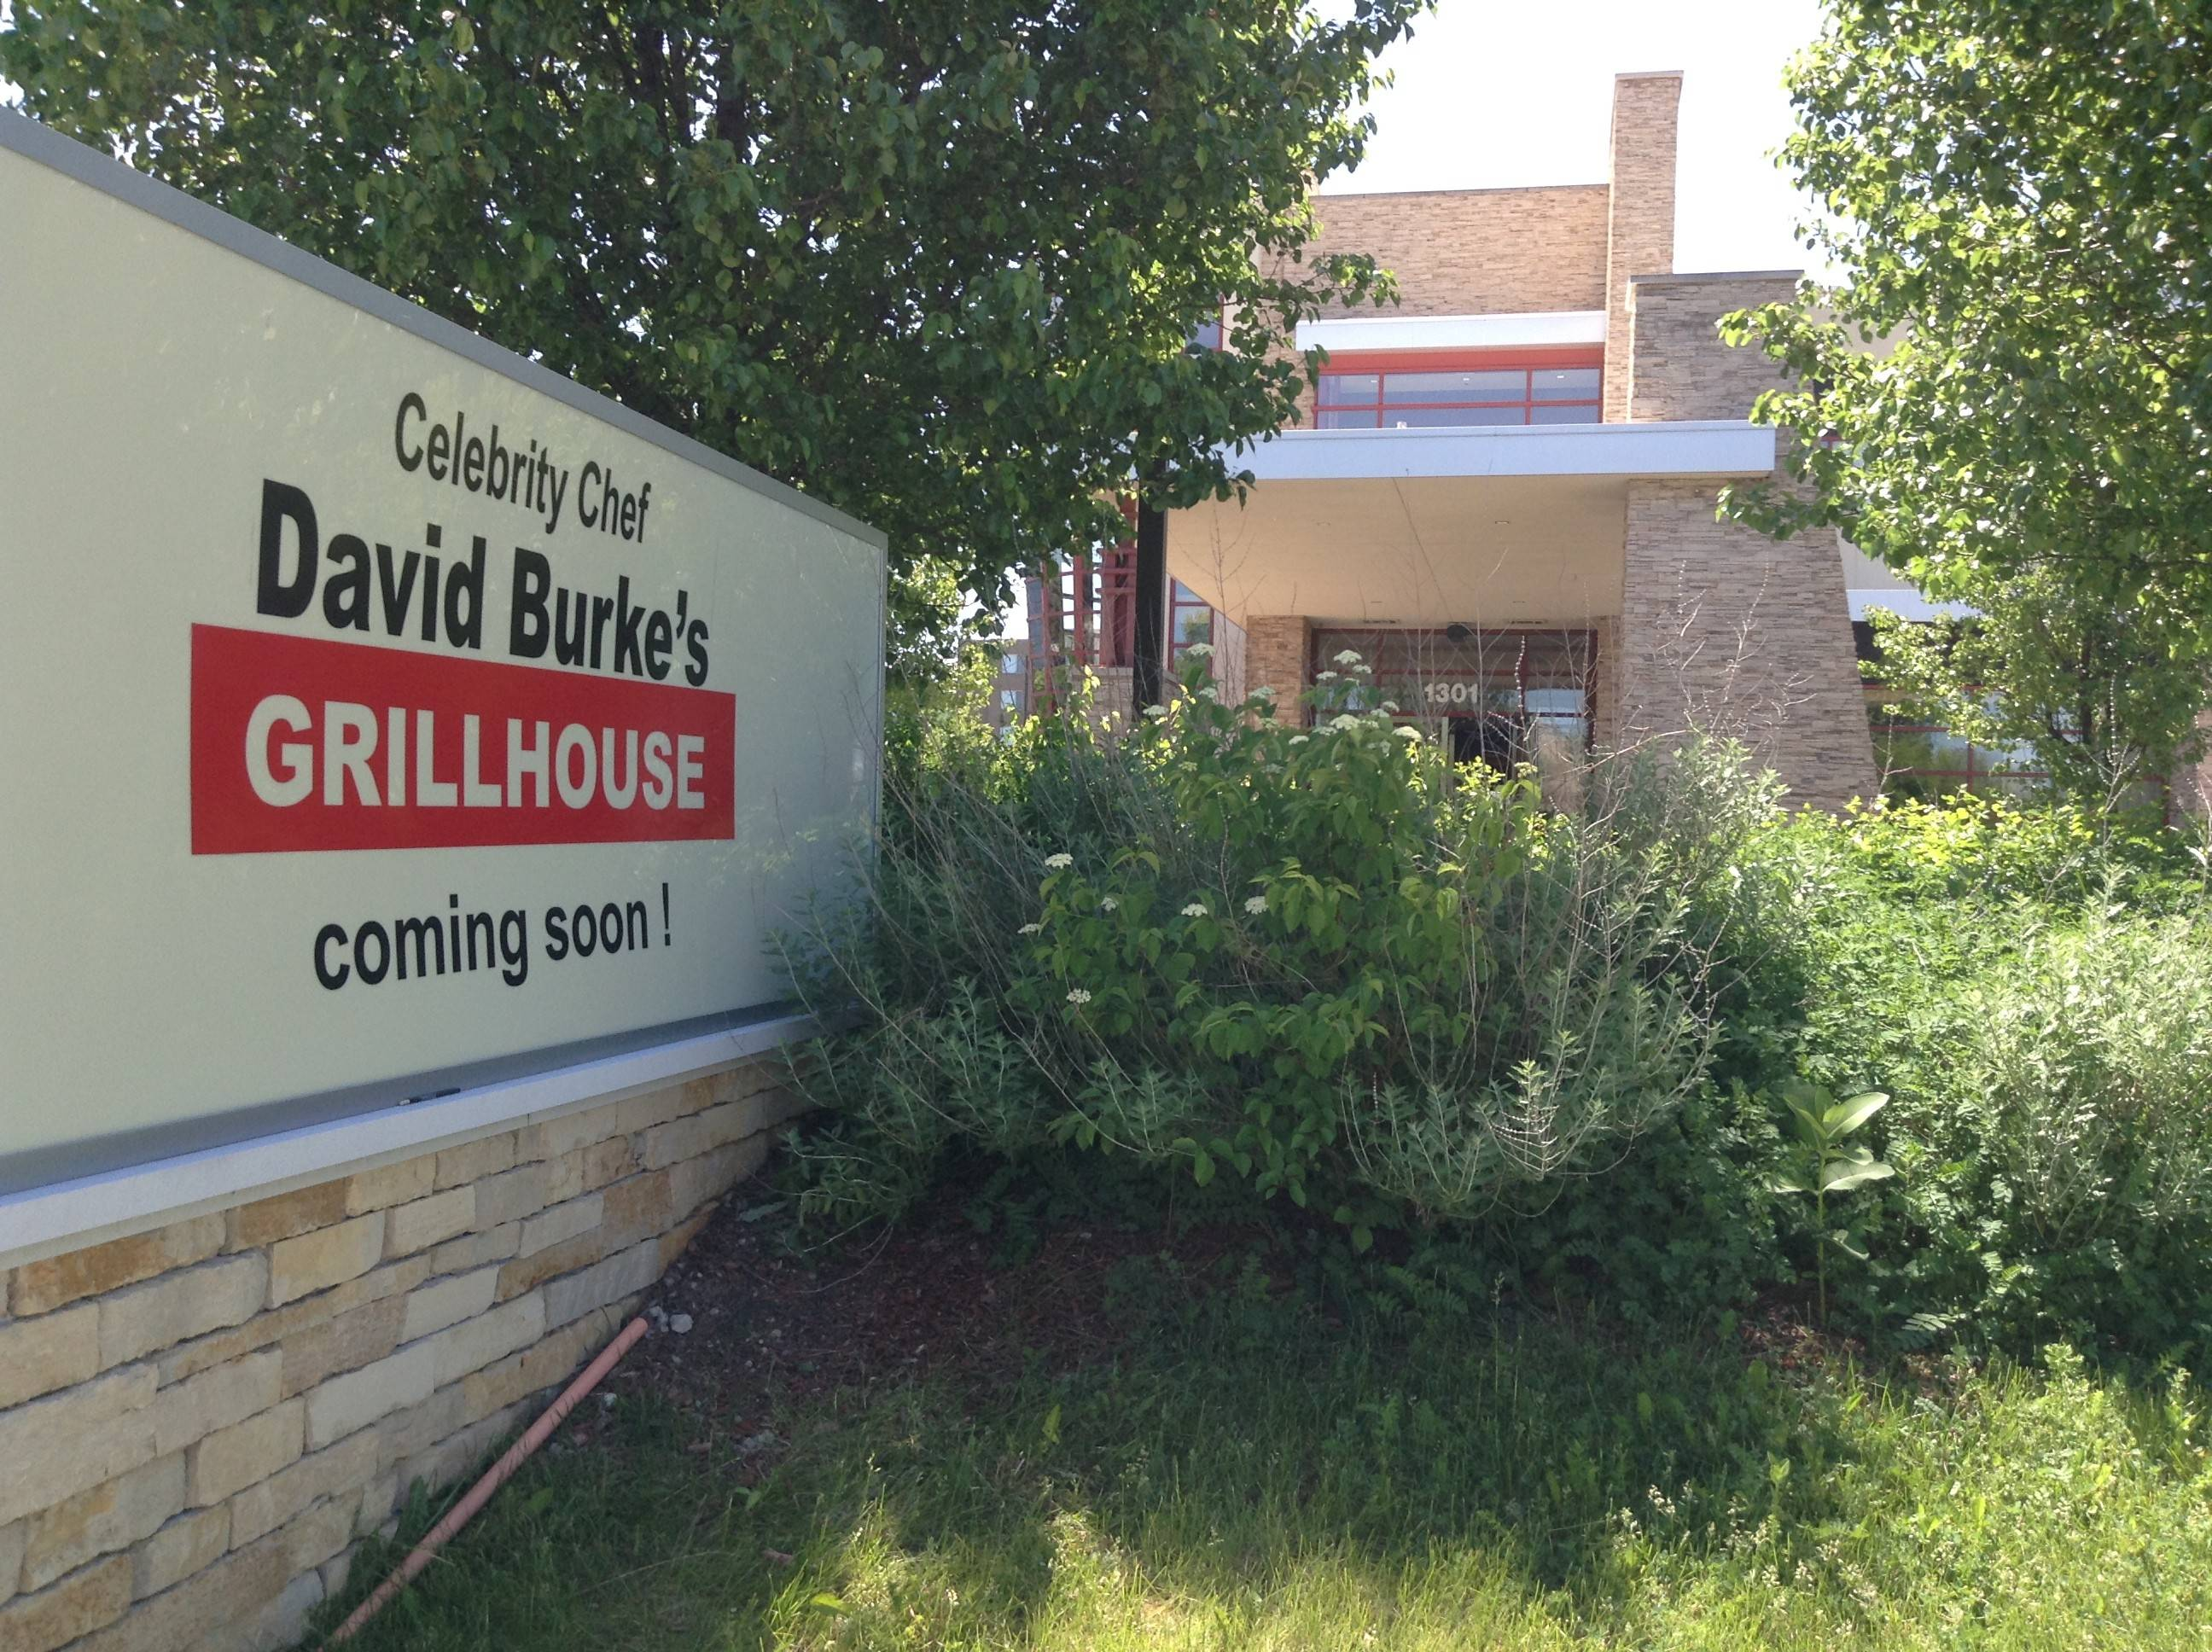 A new sign proclaims the imminent arrival of David Burke's Grillhouse at 1301 American Lane in Schaumburg, where Entourage restaurant closed four years ago.